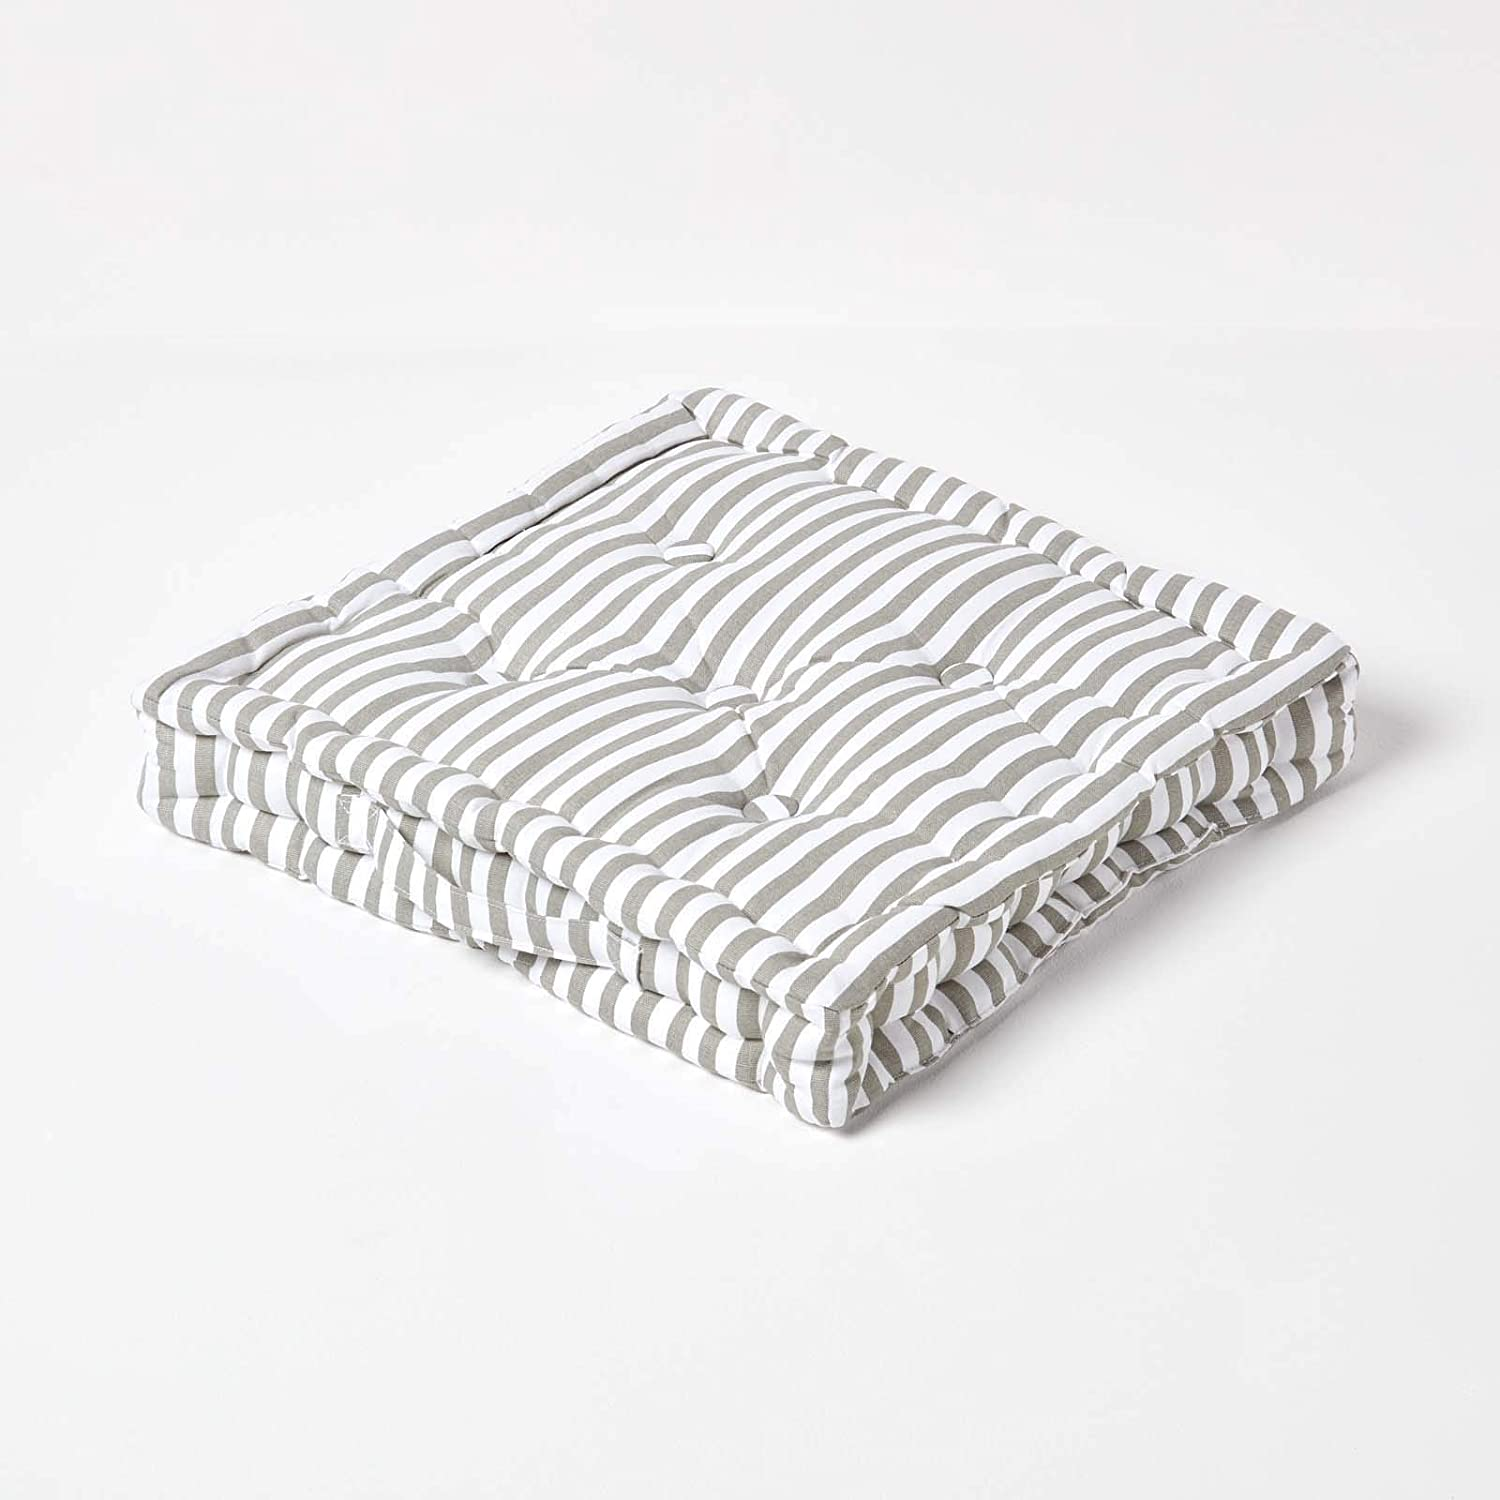 40 x 40 x 8 cm Square 100/% Cotton Indoor Thick Stripe Beige Garden Dining Chair Booster HOMESCAPES Floor Cushion Seat Pad Cushion Mink Natural